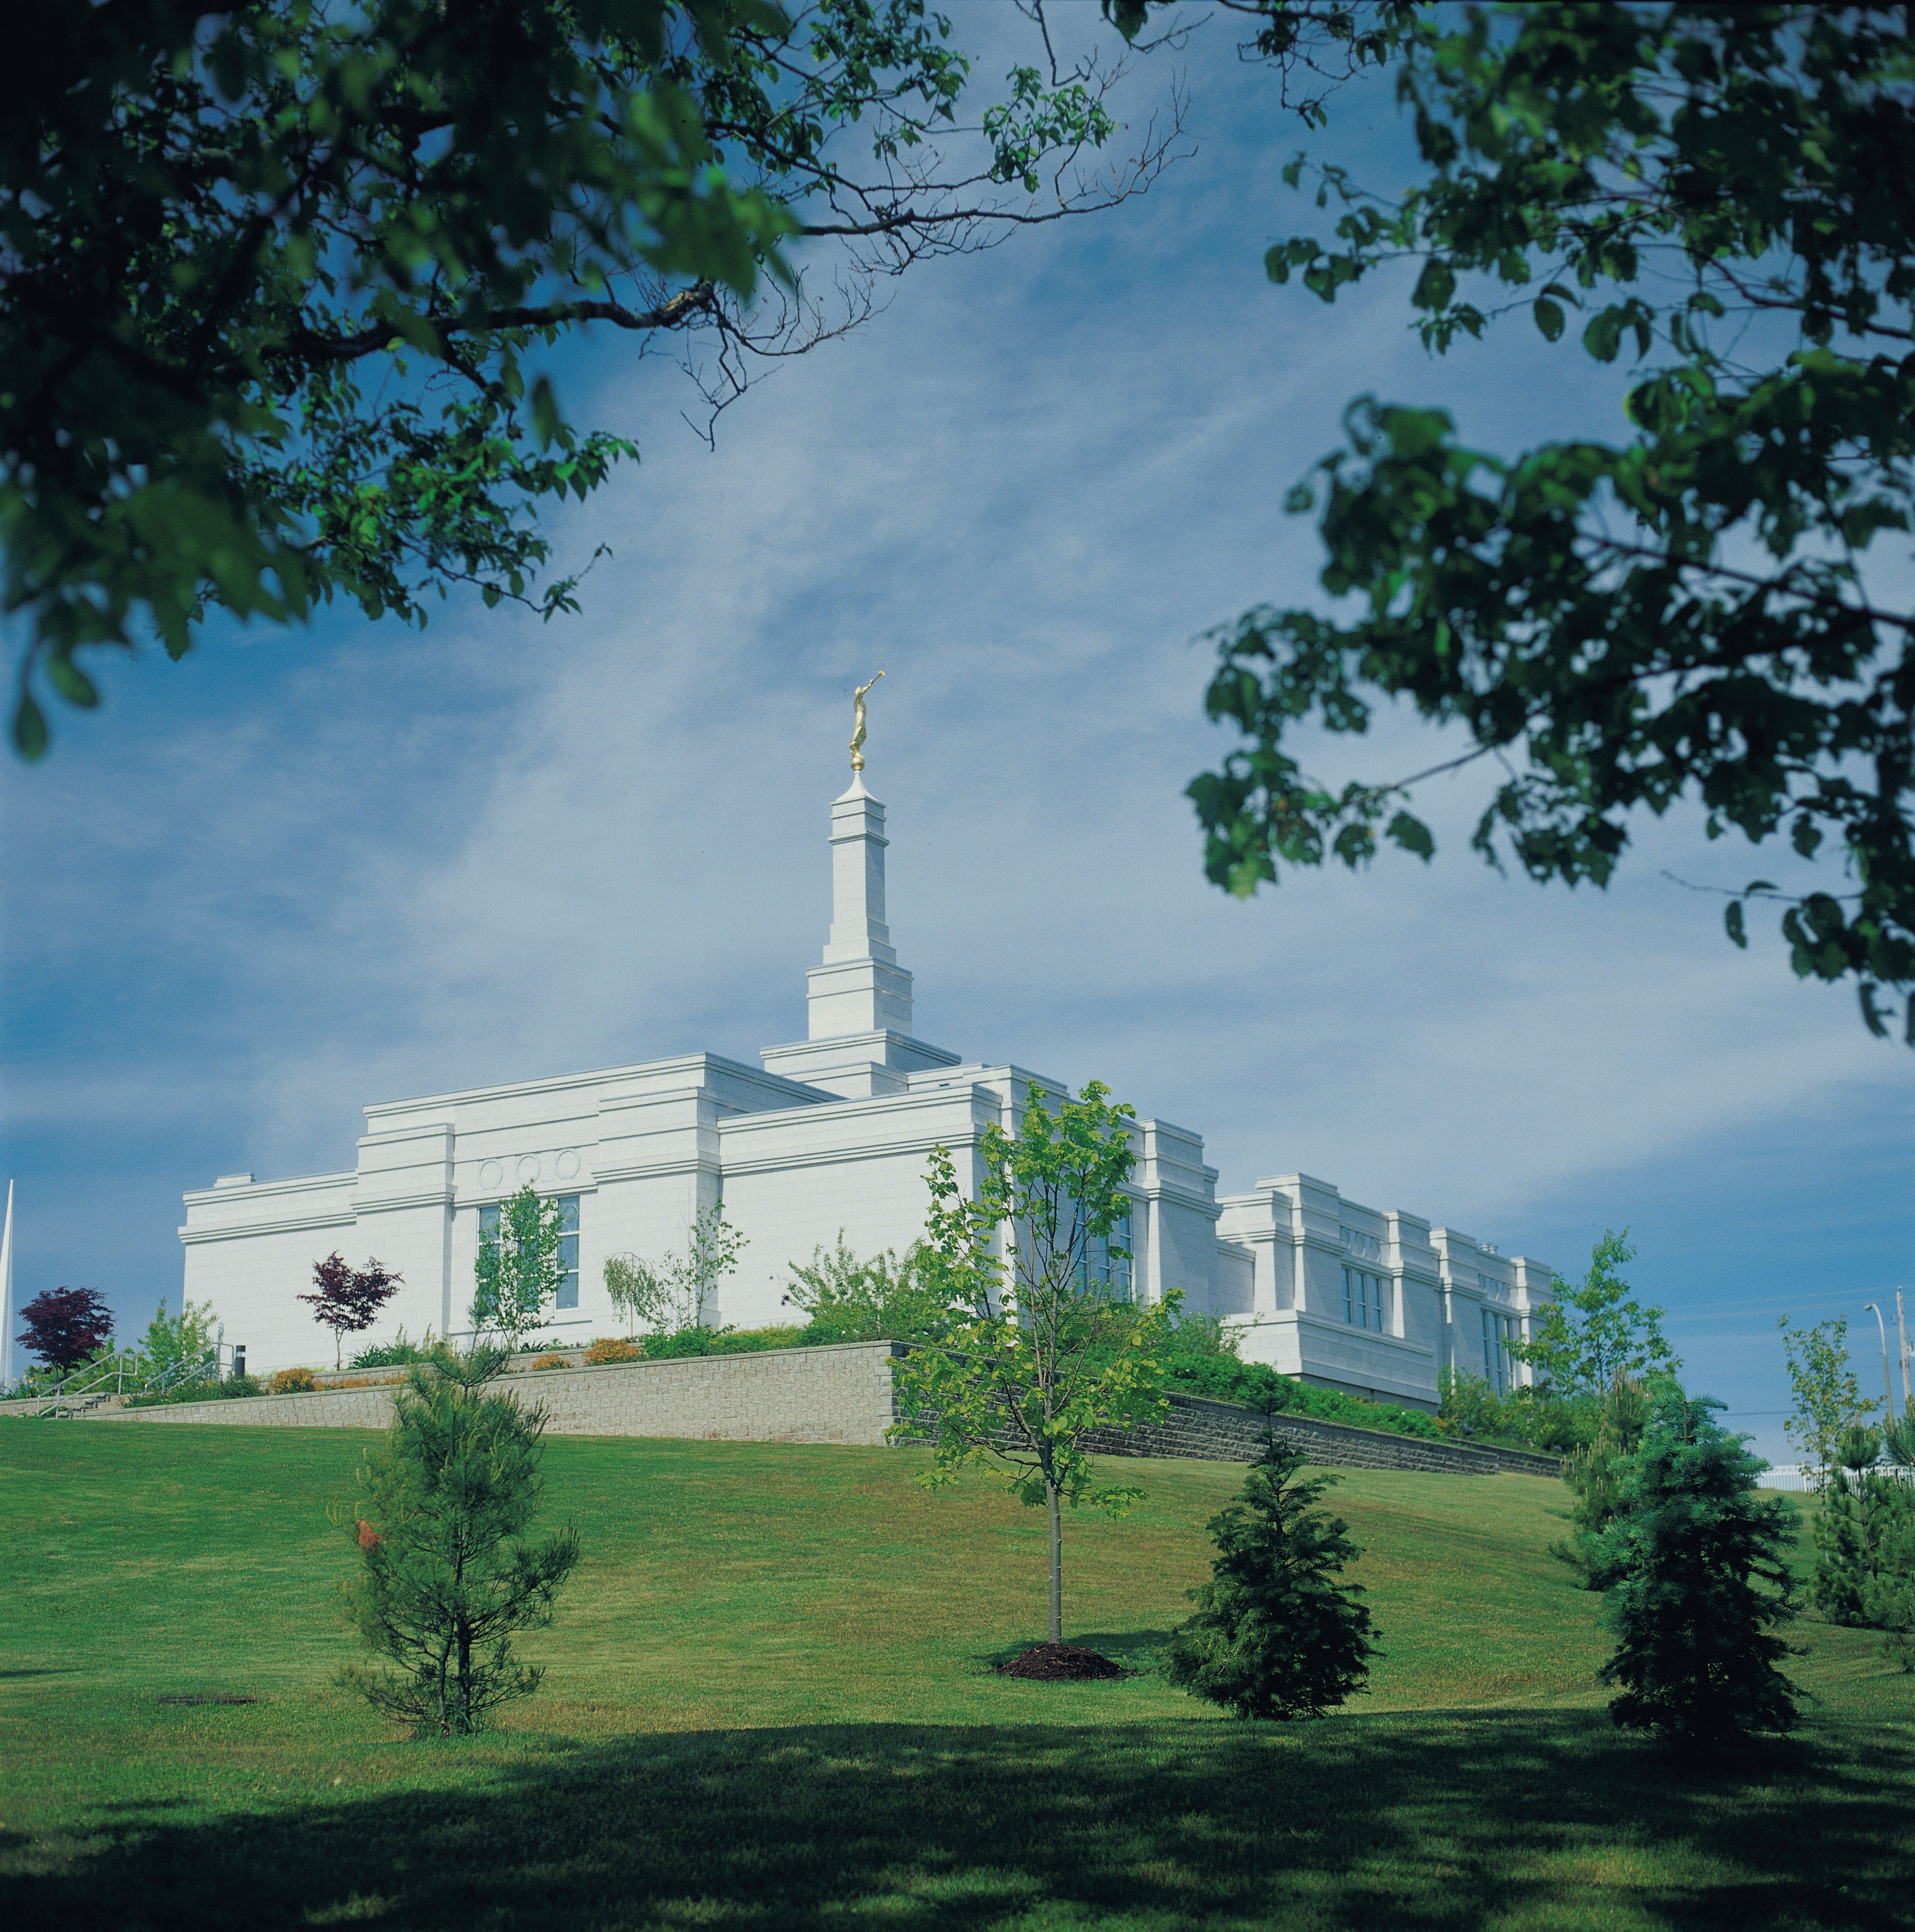 The Halifax Nova Scotia Temple and grounds in the daytime.